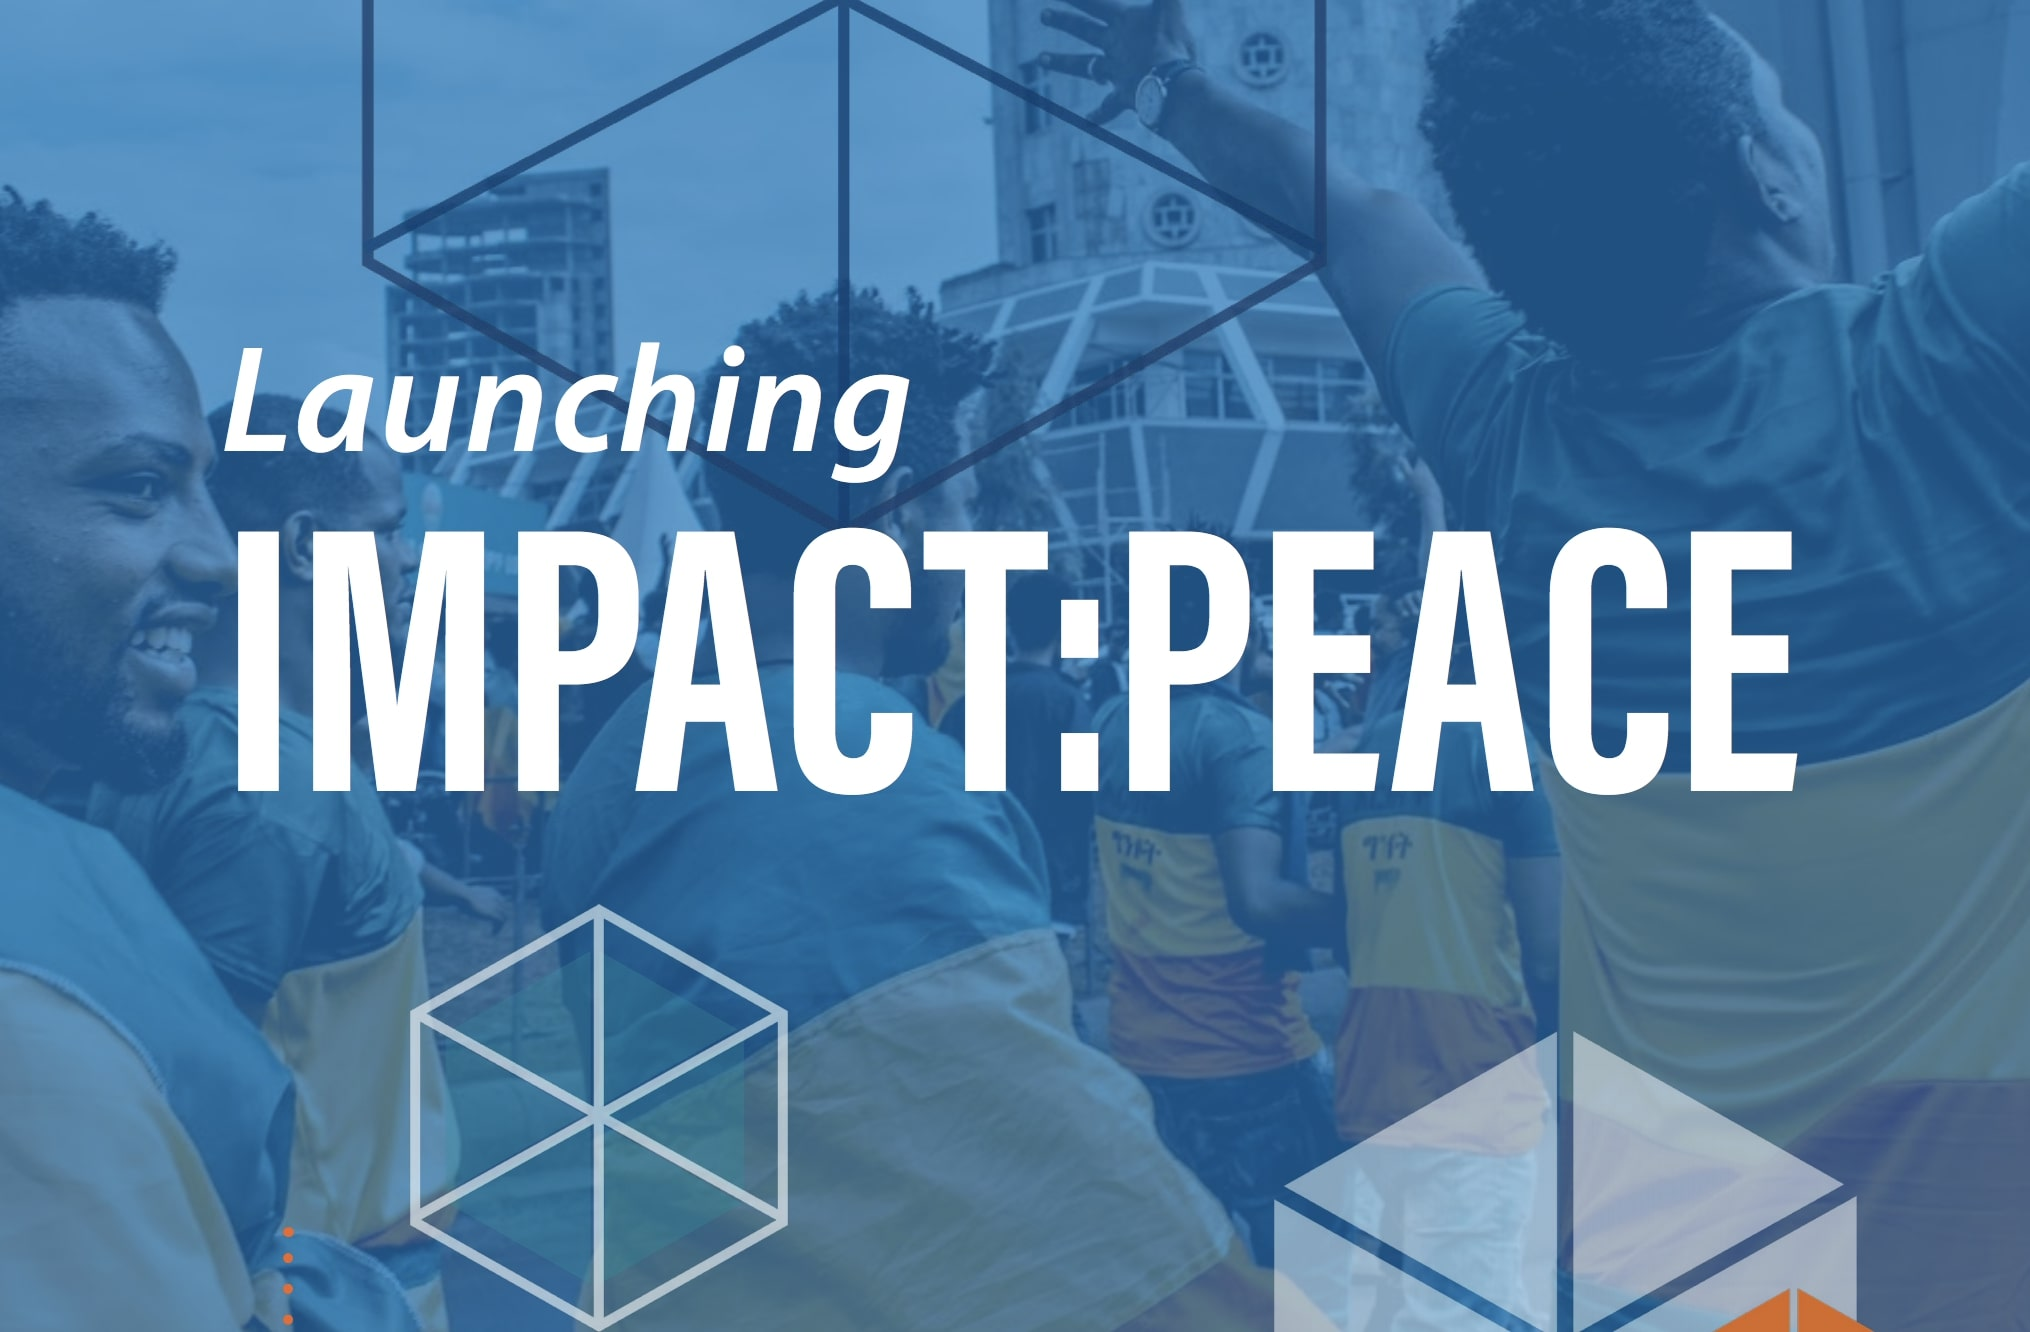 Launching Impact:Peace